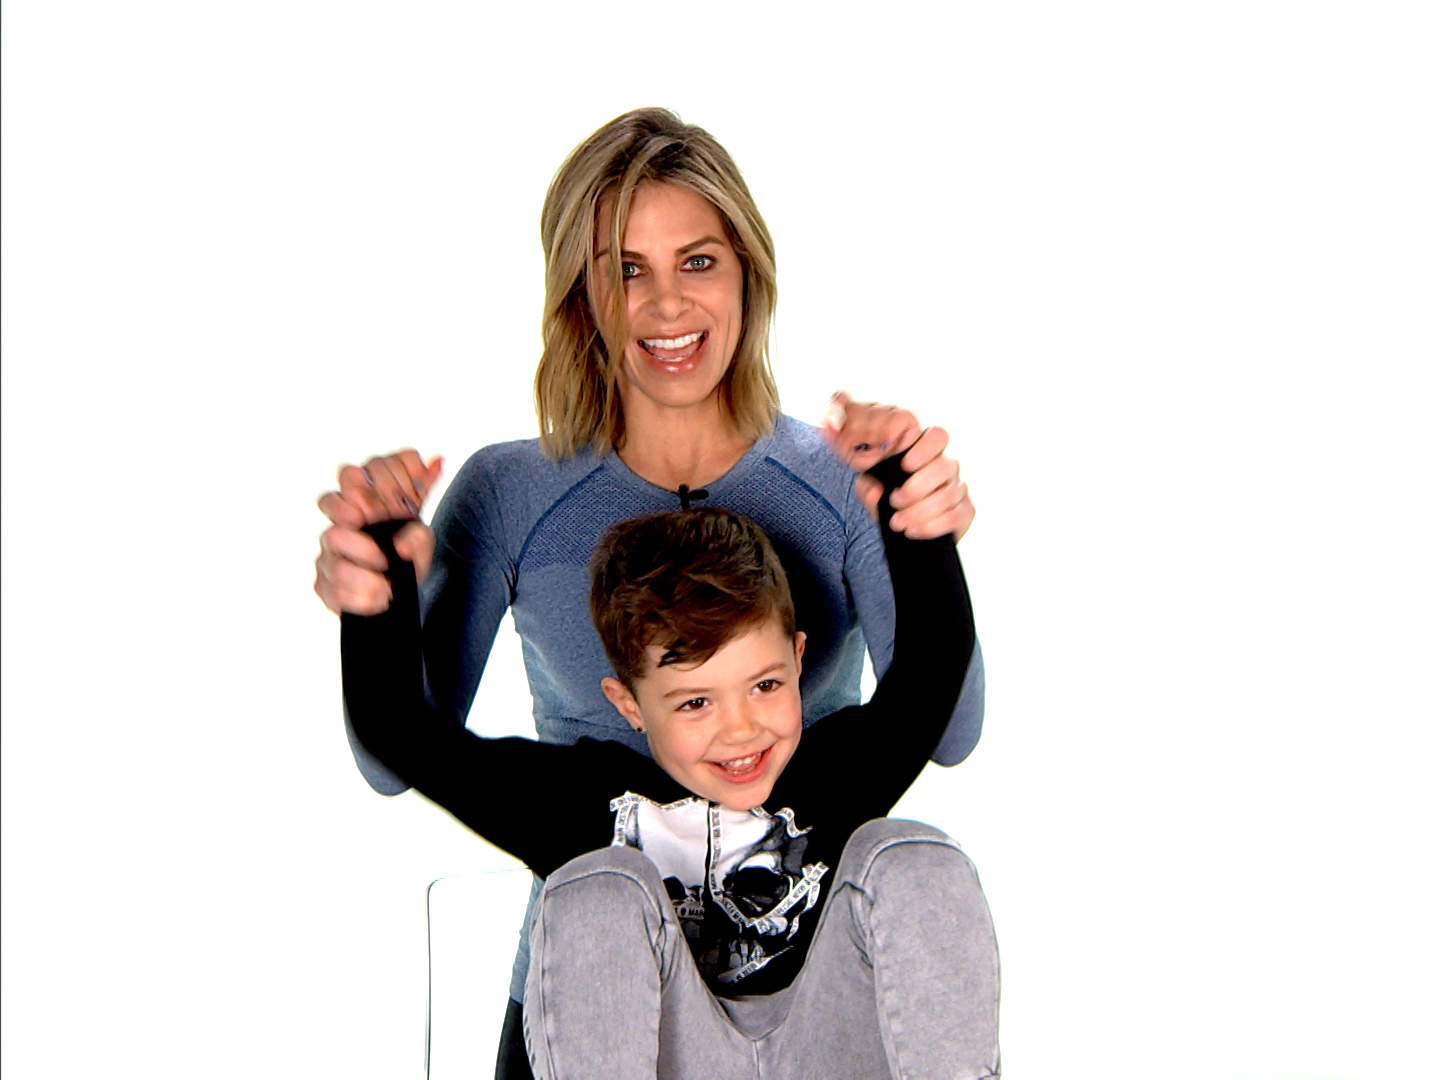 jillian-michaels-ask-her-son-how-he-stays-healthy-video